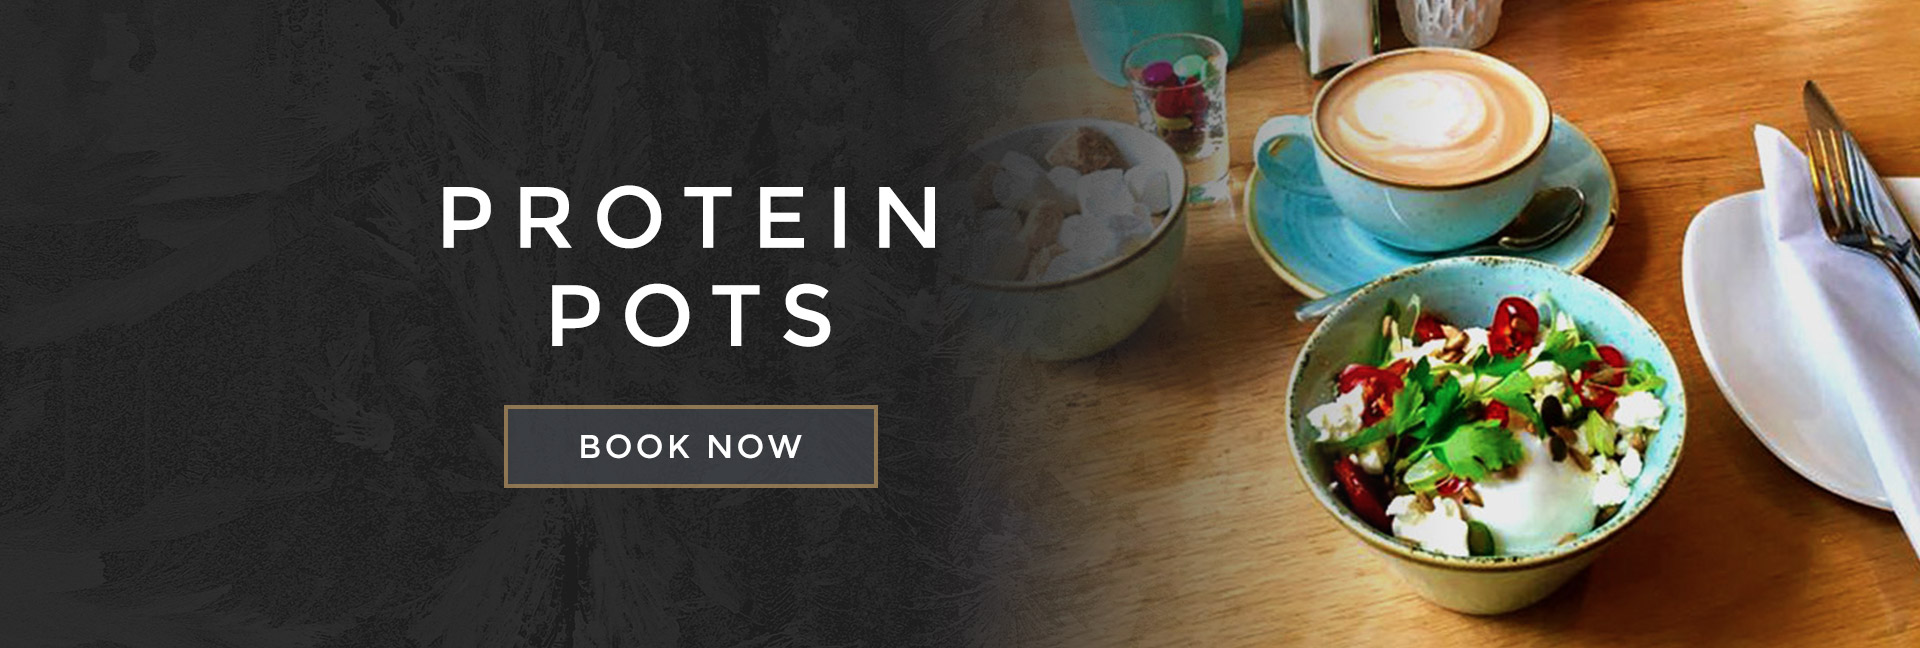 Protein pots at All Bar One Norwich - Book your table